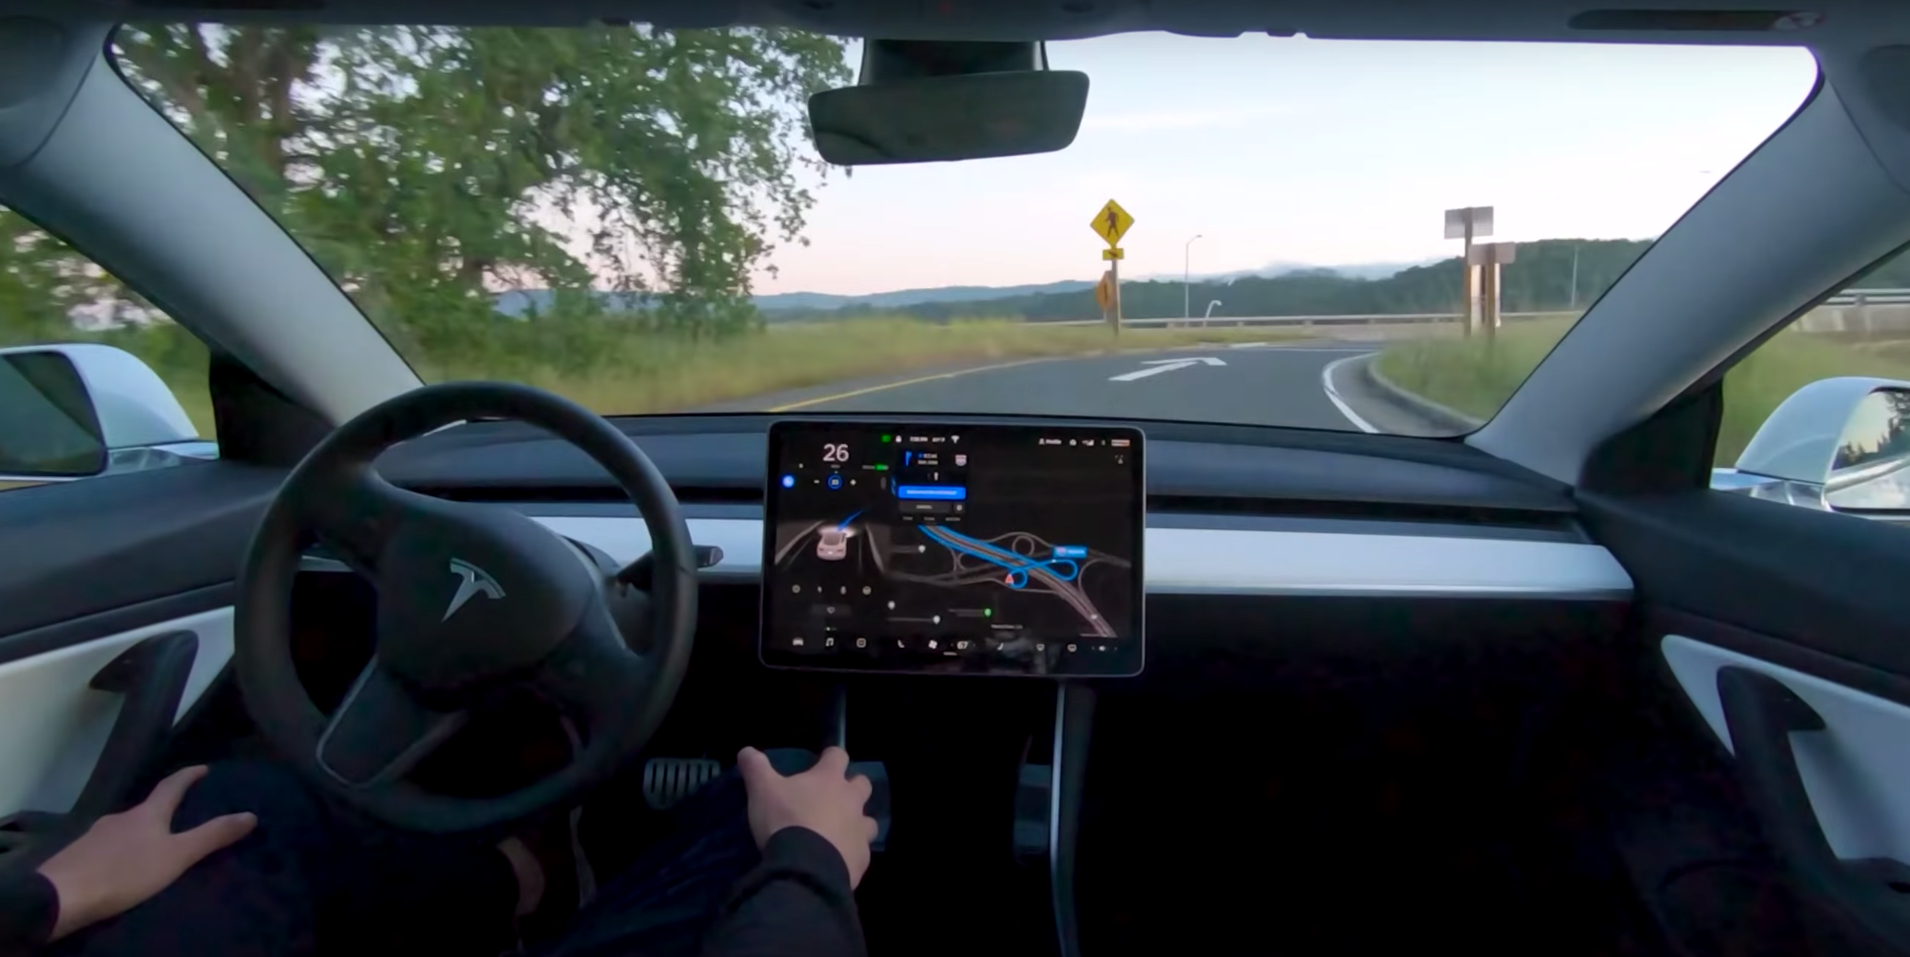 New Tesla Video Shows a Full Self-Driving Car, Powered by Neural Networks